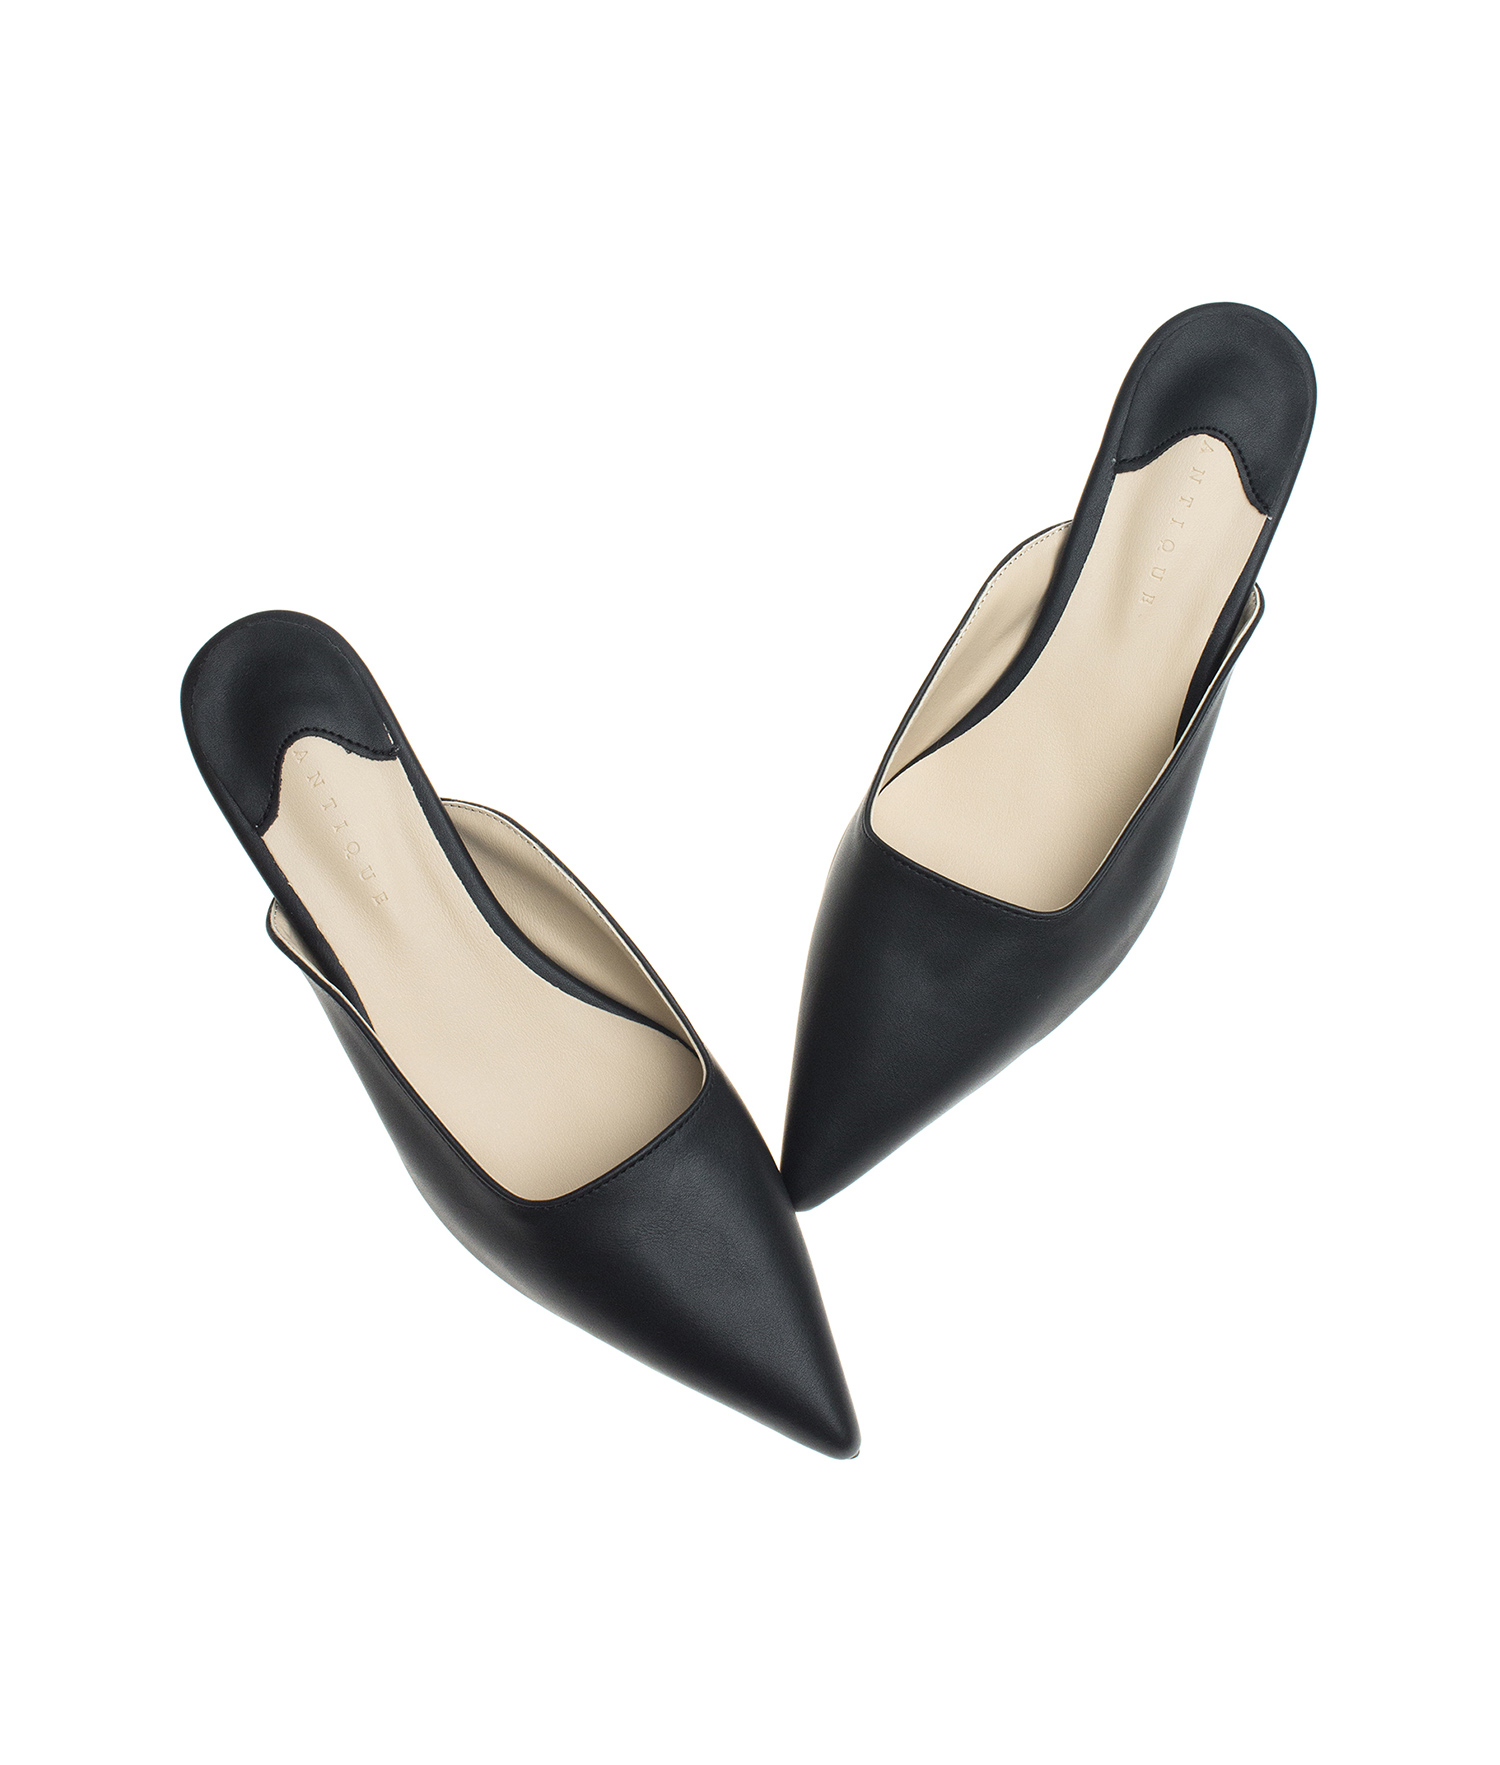 fc55cf8ac AnnaKastle Womens Pointed Toe Kitten Heel Mule Pumps Black